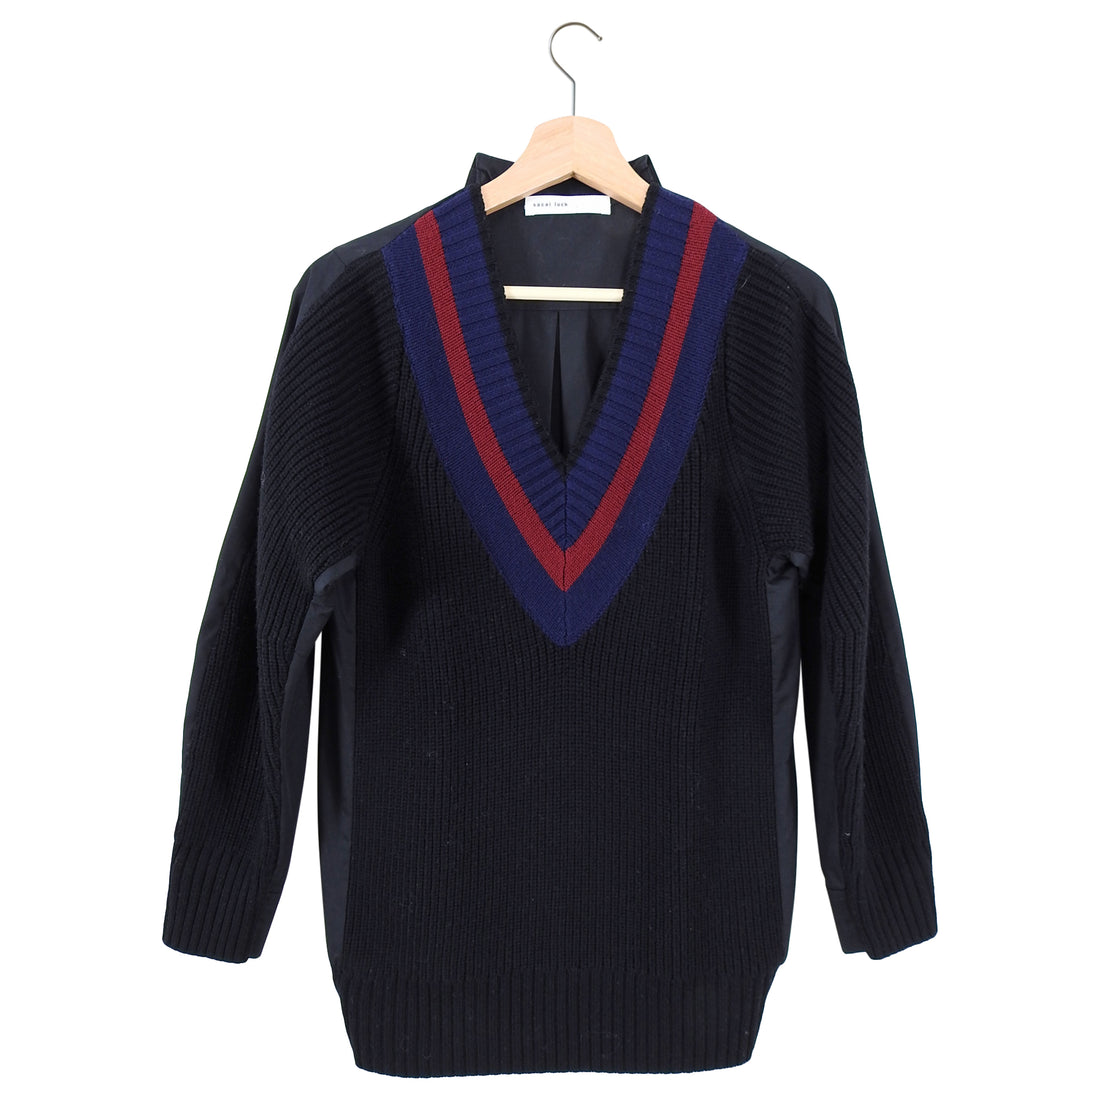 Sacai Luck Knit College Sweater with Cotton Back Inset - 6